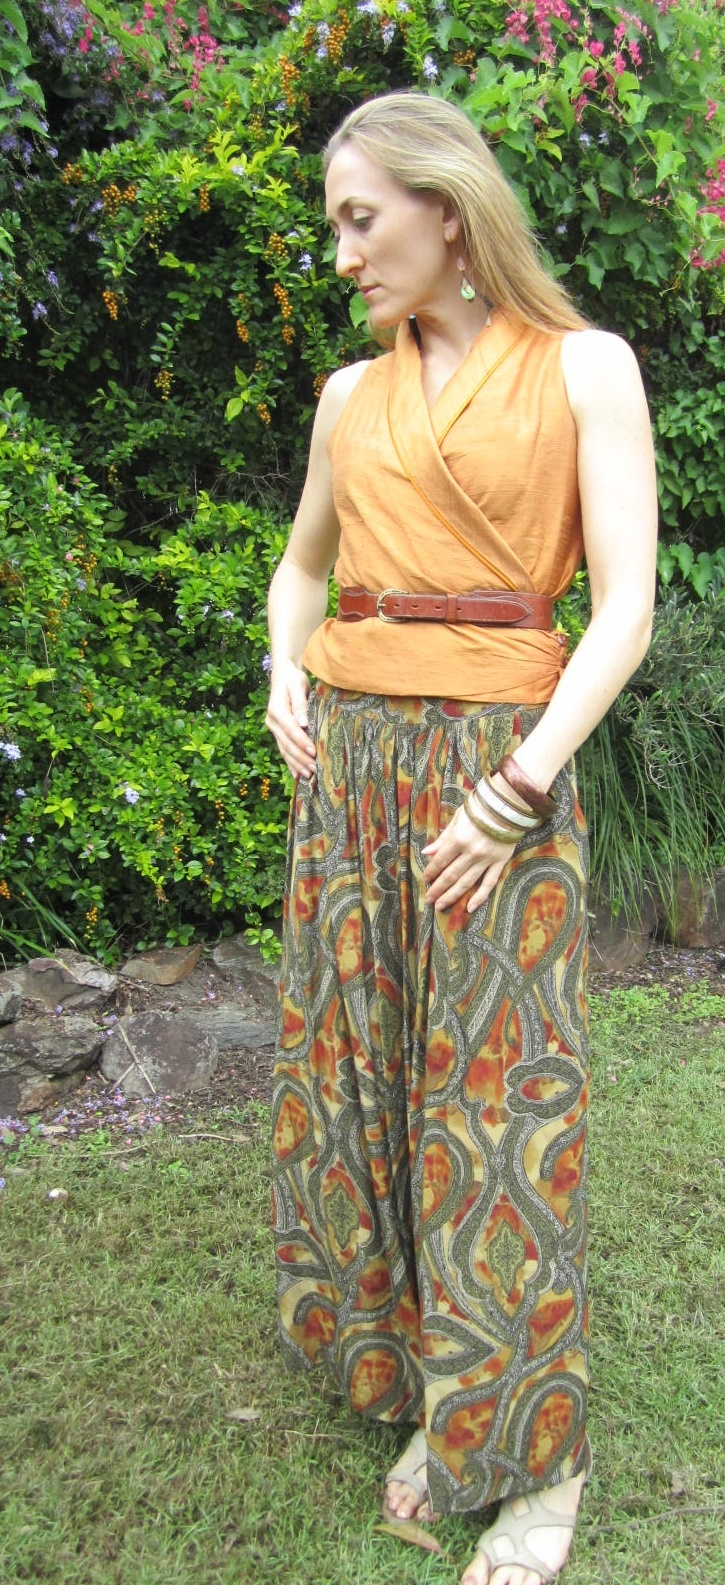 Autumn dreaming today with beautiful wide legged silk pants, shot silk vest style top cinched with RM Williams leather waist belt and a few bangles - follow my outfits on twitter @misstreschic